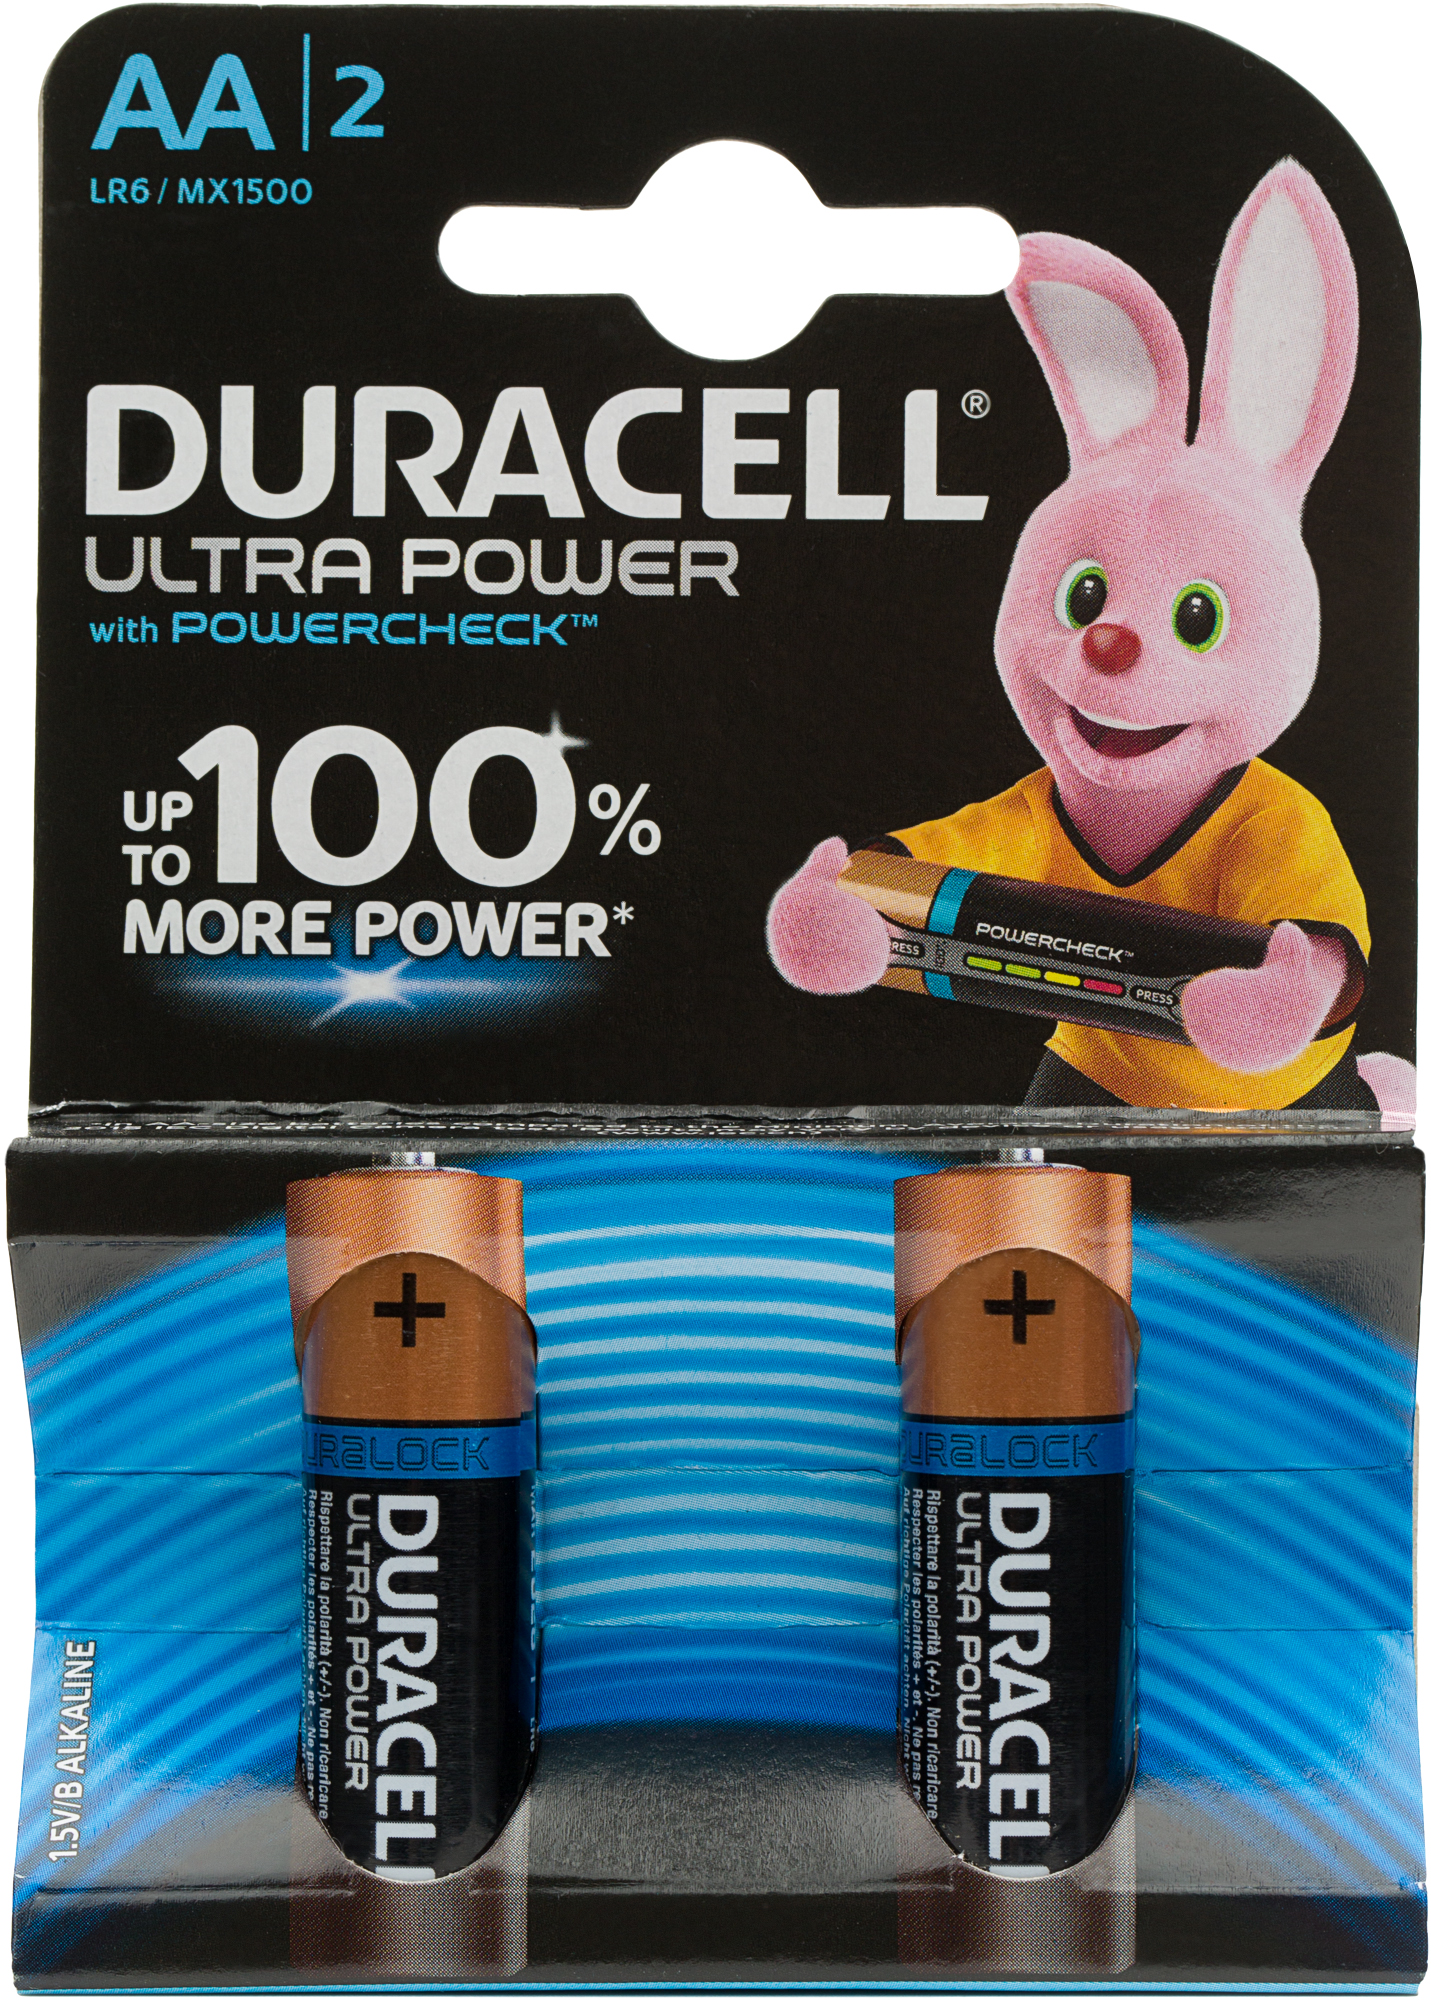 Duracell Батарейки щелочные Ultra Power АА/LR6, 2 шт.